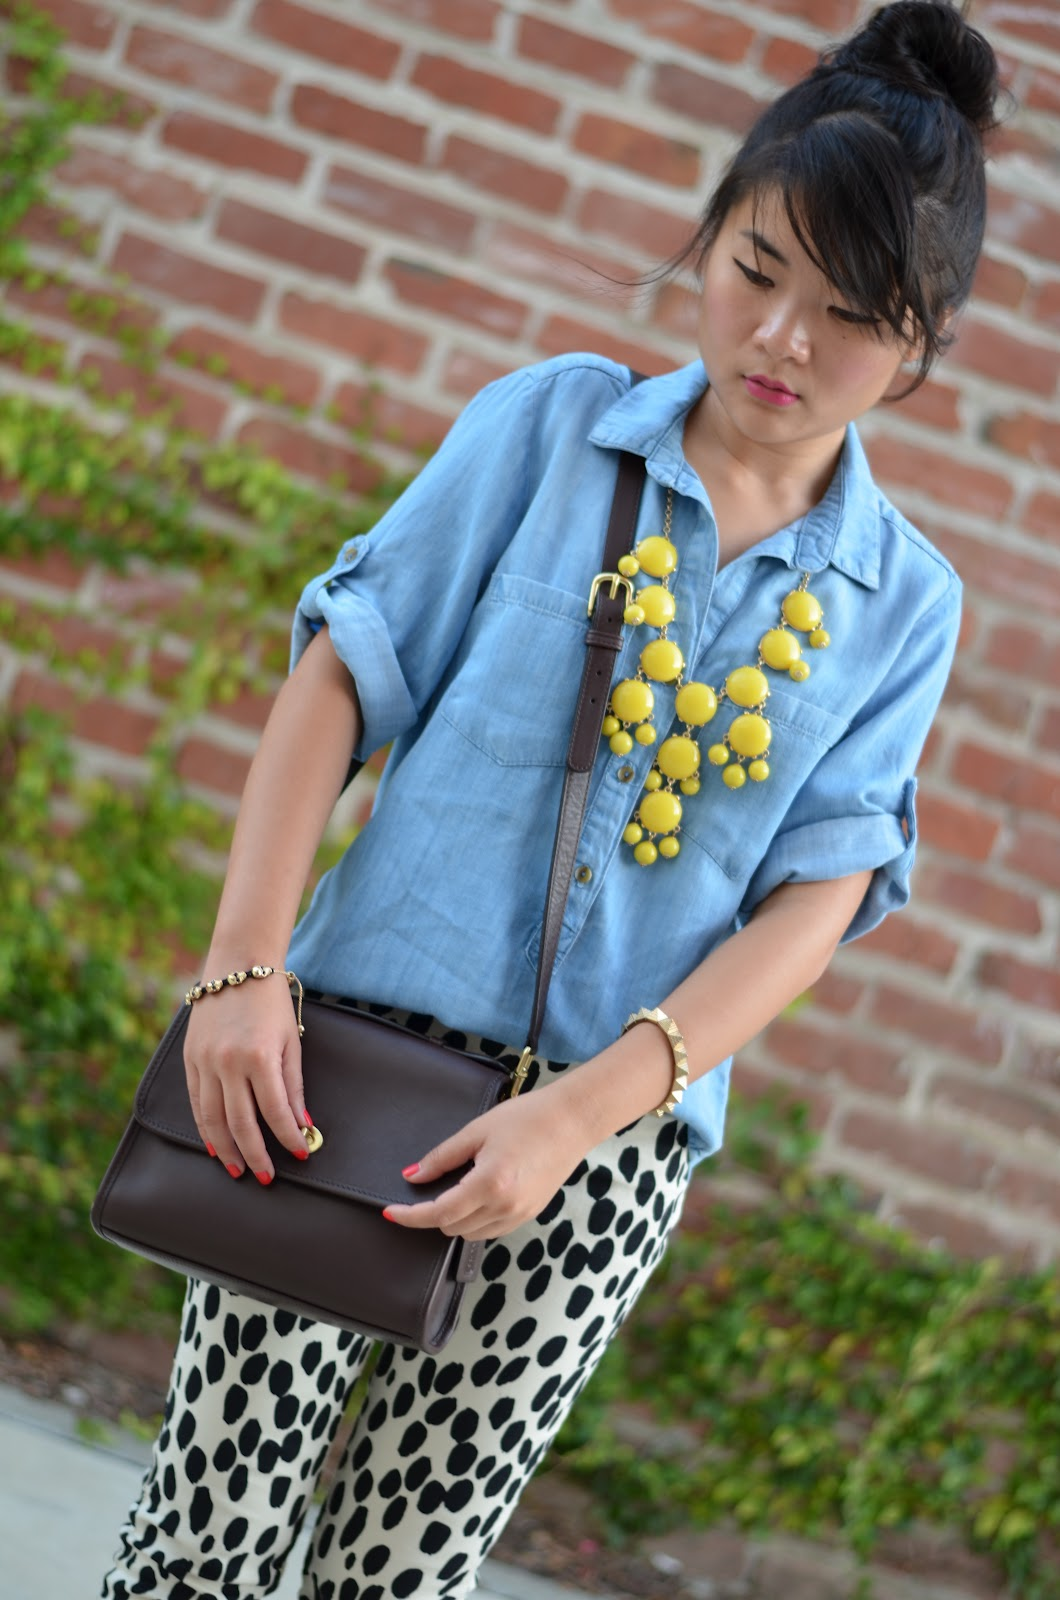 bella dahl chambray shirt, bella dahl jean shirt, j.crew bubble necklace, jcrew bubble necklace, j.crew yellow necklace, jcrew yellow necklace, j.crew yellow bubble necklace, jcrew yellow bubble necklace, coach classic court bag mahogany, coach classic court bag, h&m dalmation pants, attiilio giusti leombruni ballerina flats candy mango, attilio giusti leombruni ballerina flats, agl flats, agl ballerina flats, agl flats candy mango, agl ballerina flats candy mango, agl candy mango